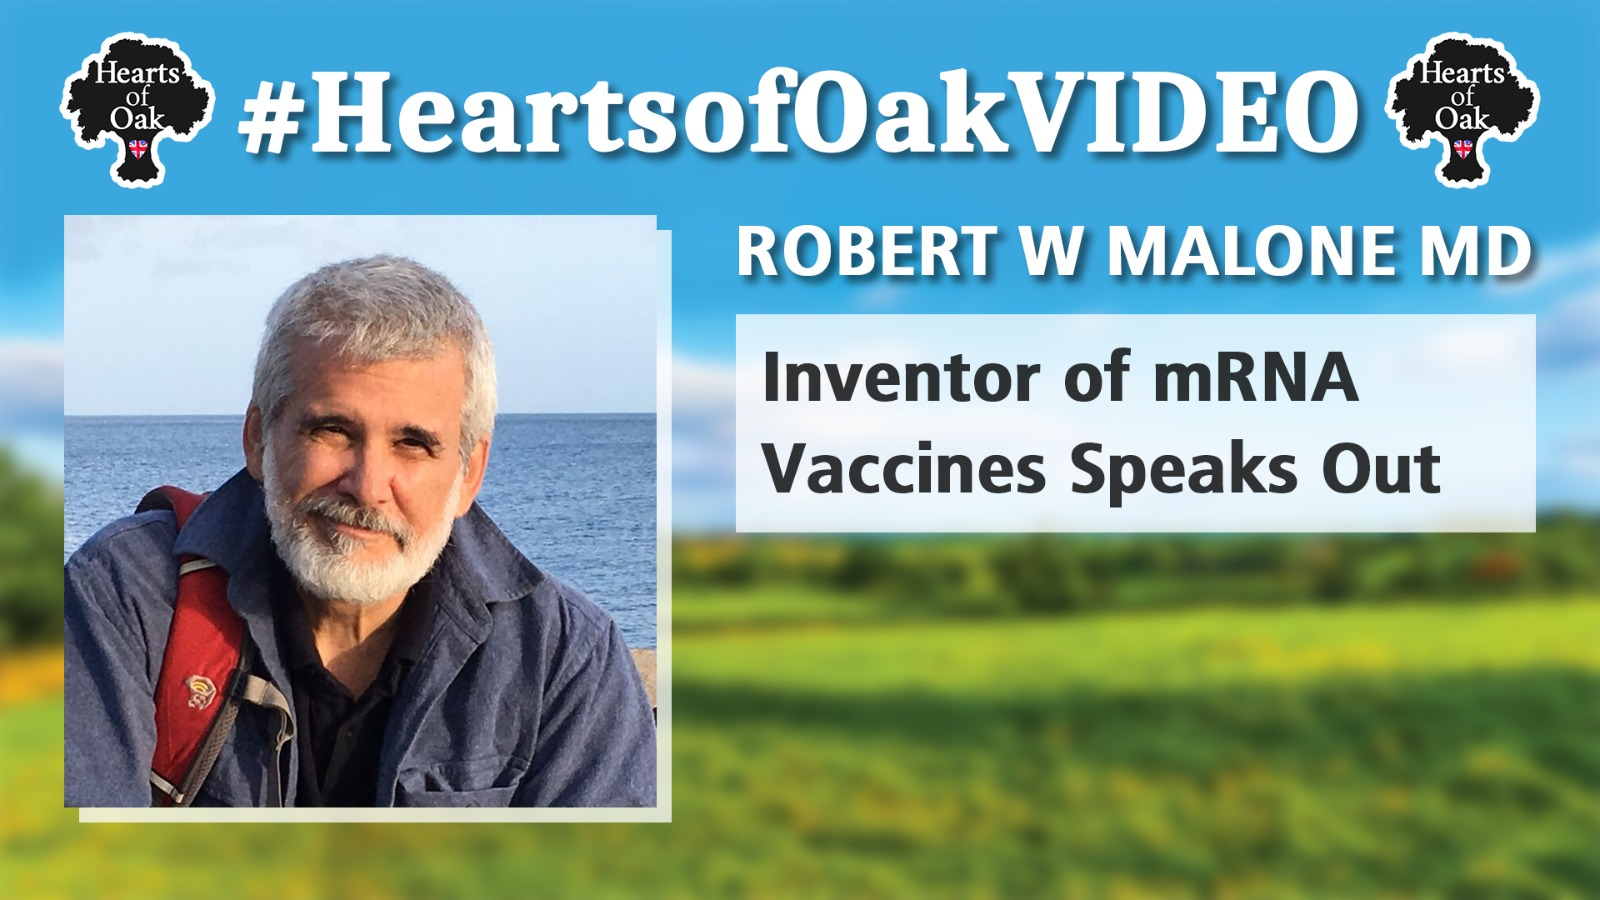 Robert W Malone MD  - Inventor of mRNA Vaccines Speaks Out